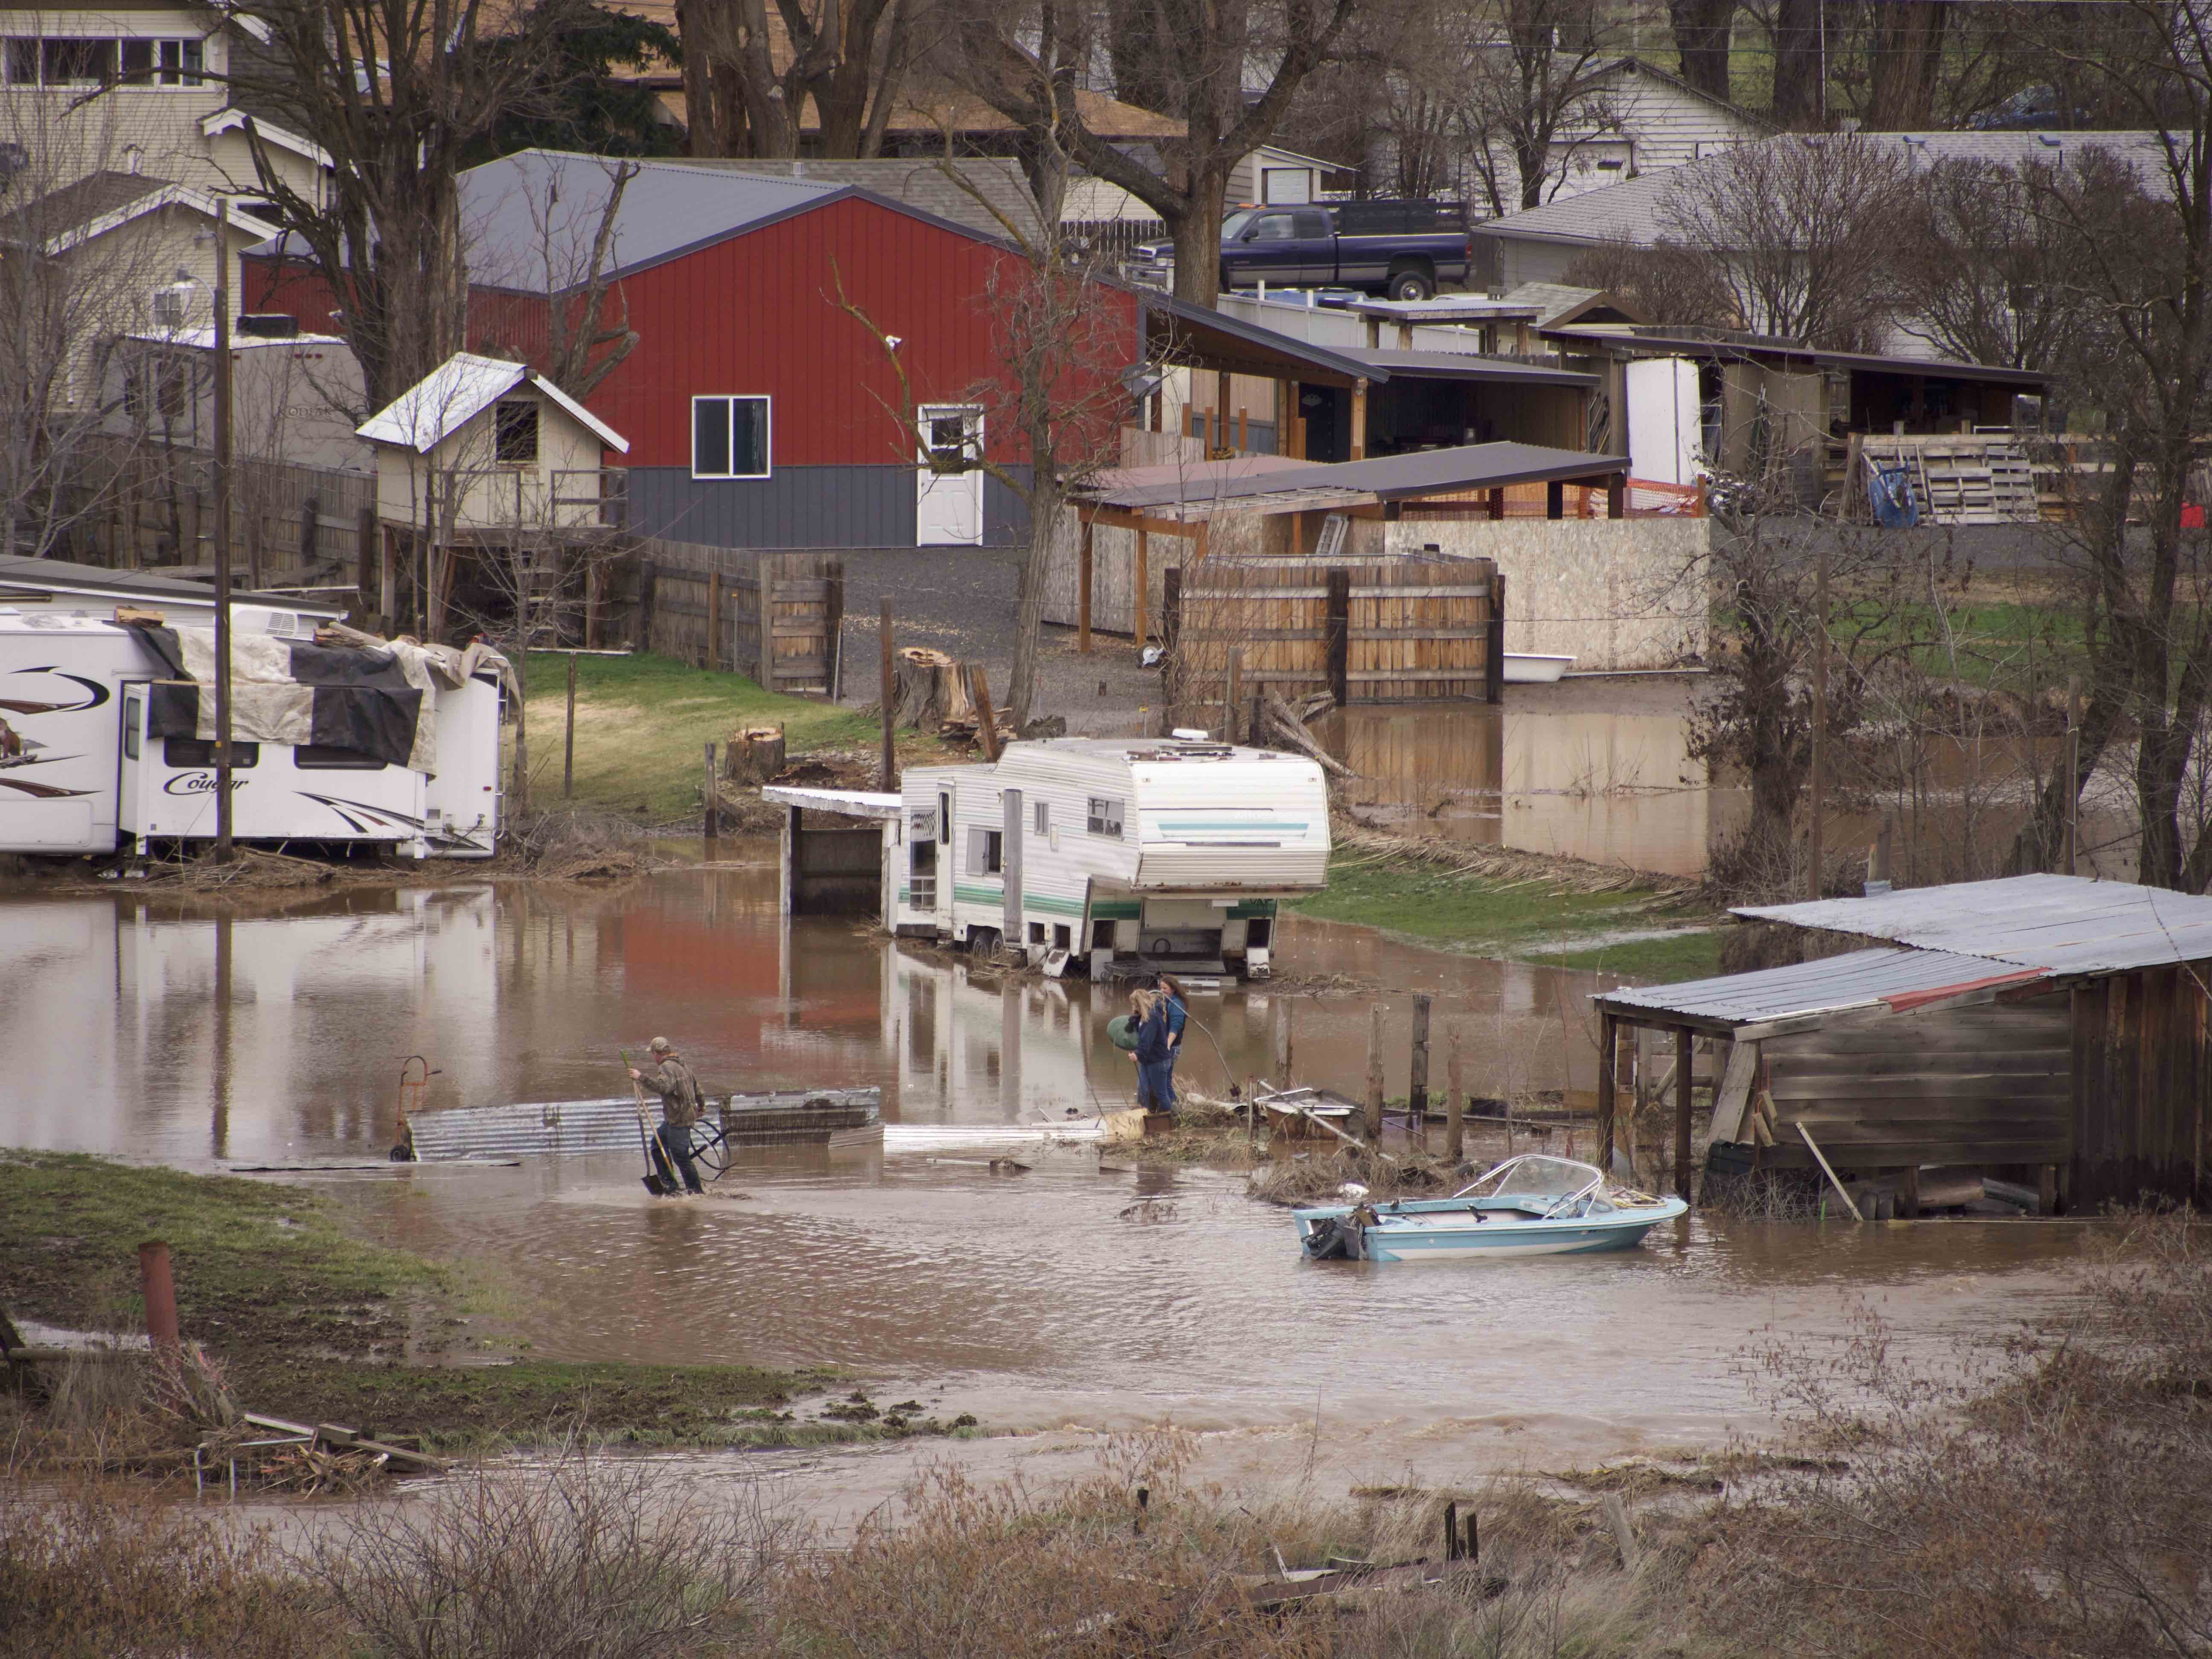 Council discusses flood costs, help for Riverside